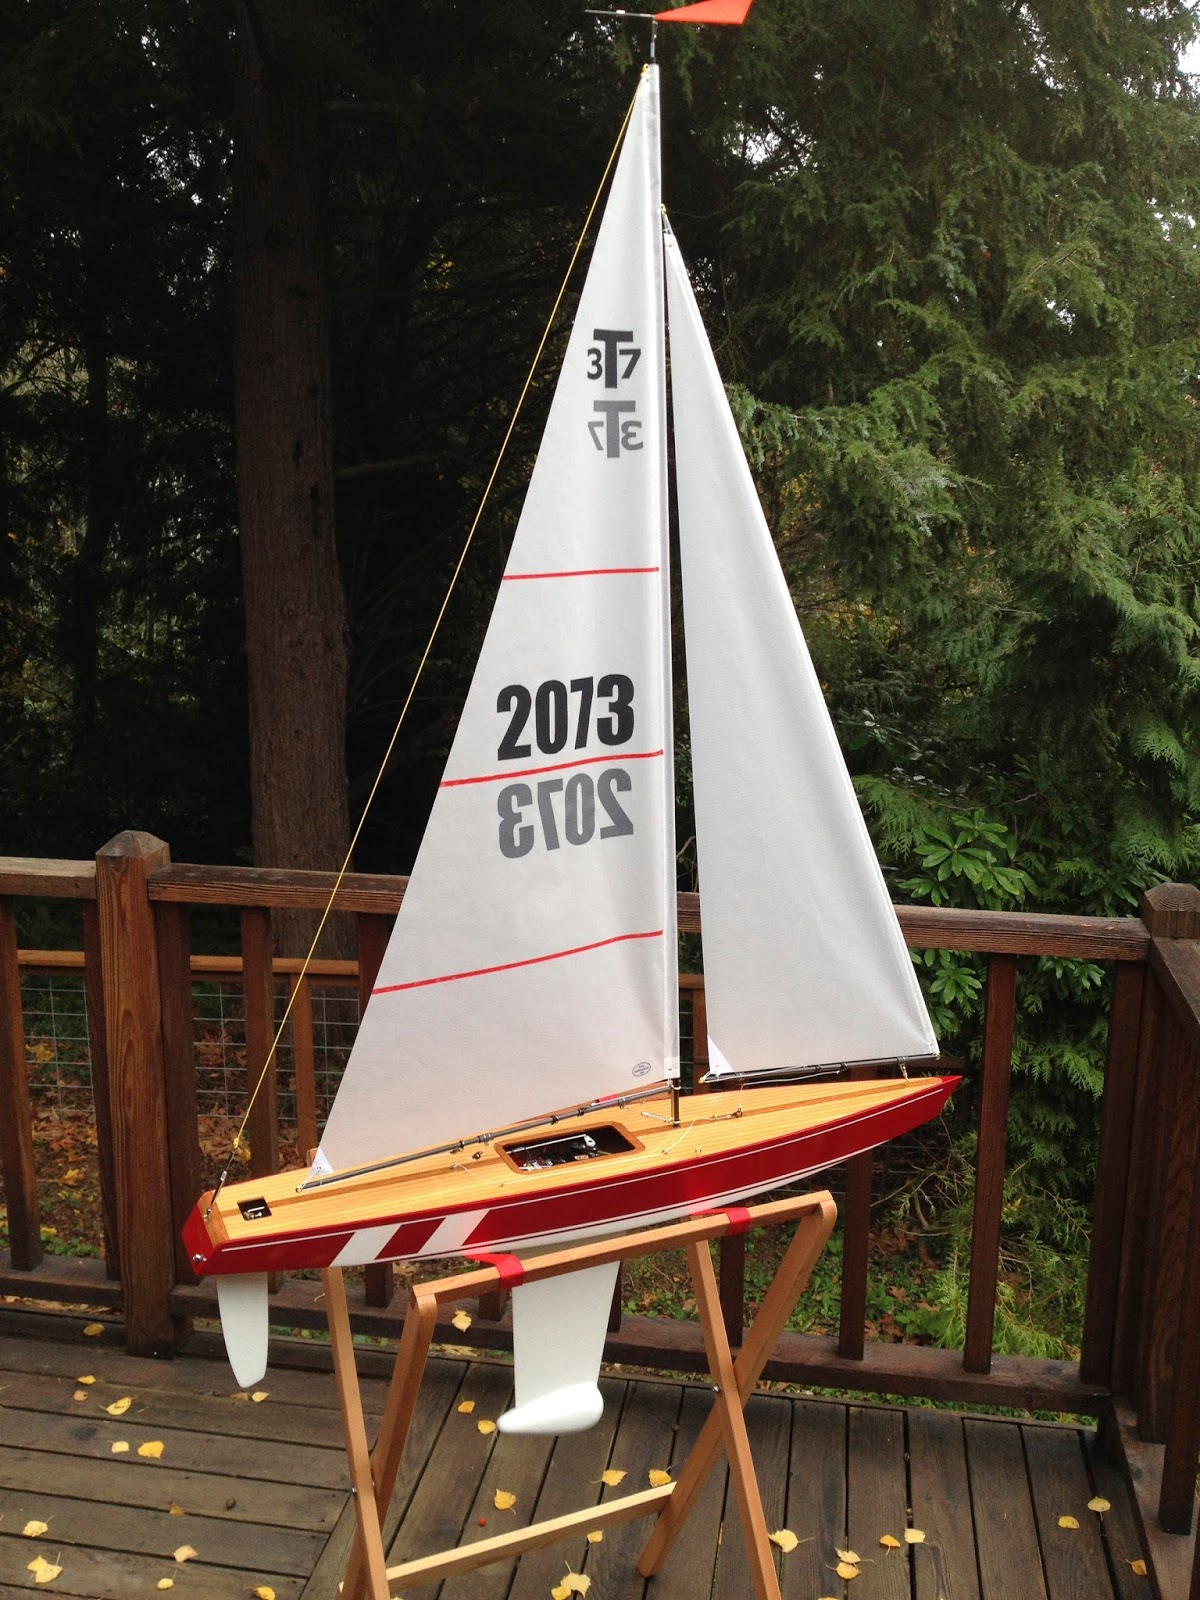 T37 RC Sailboat for Sale (and SAIL)!